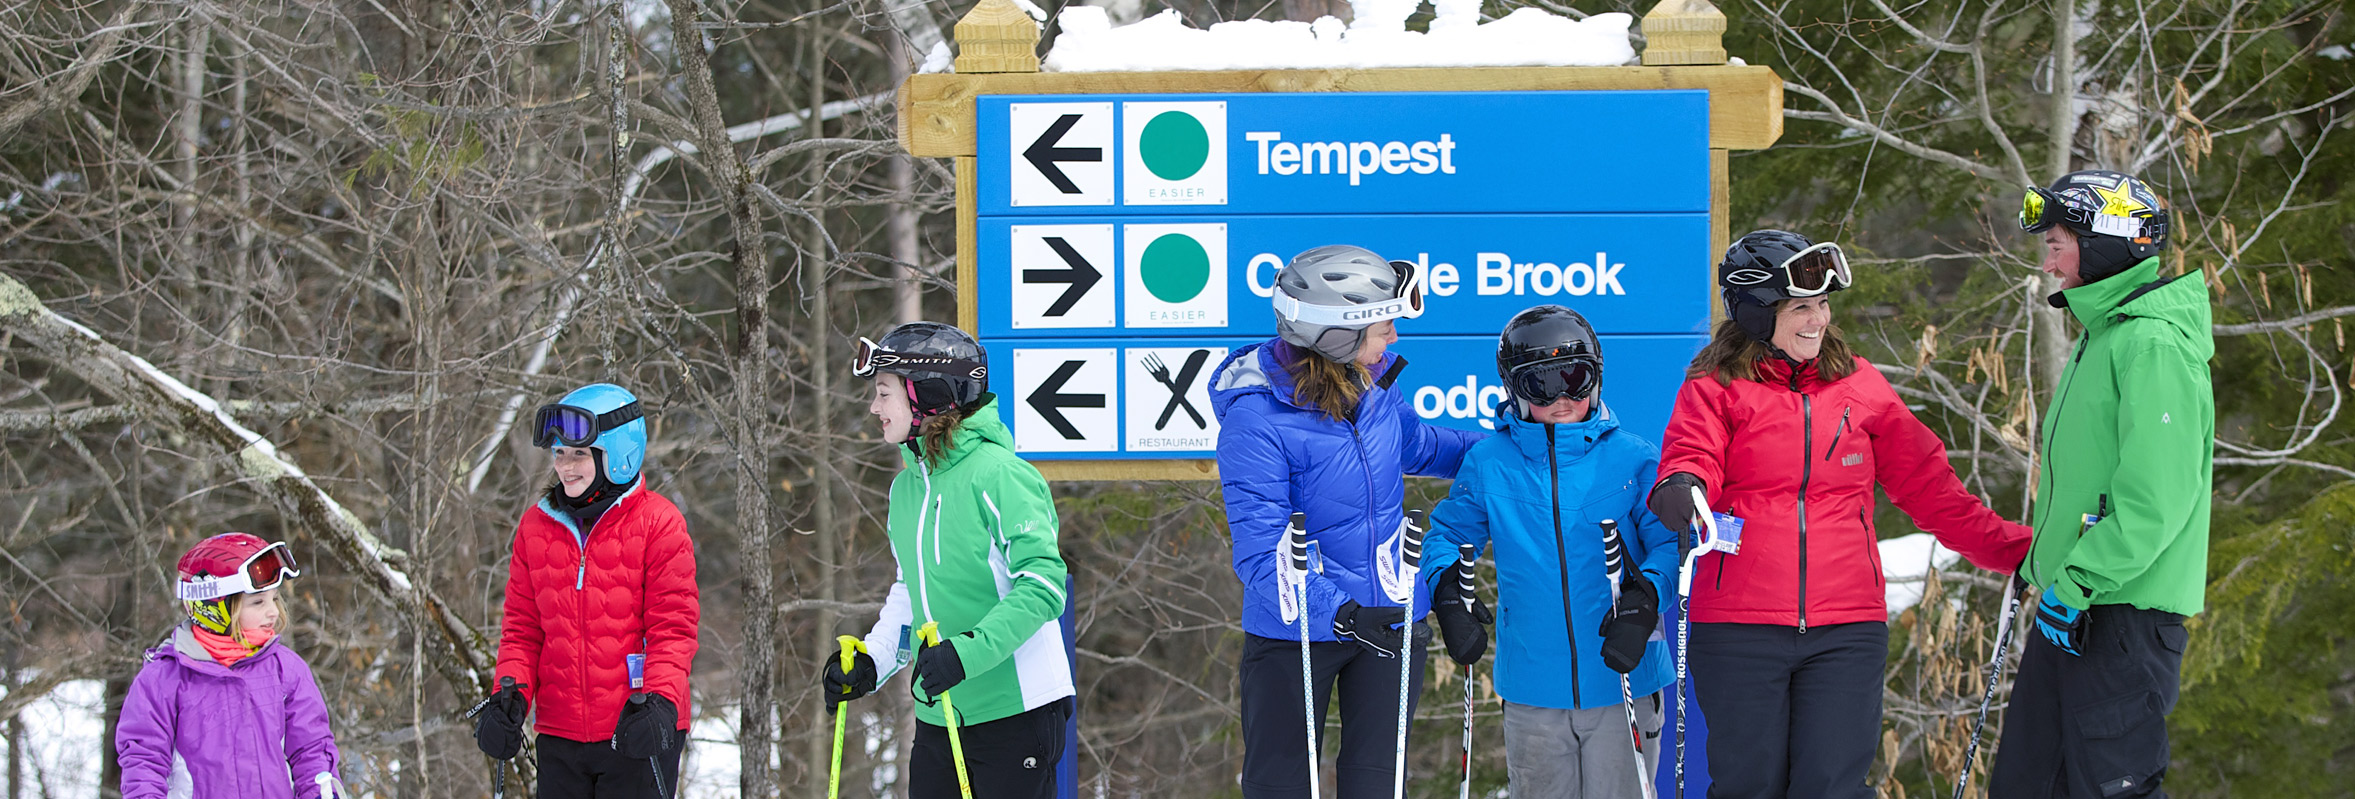 Photo of Skiers in front of trail signs